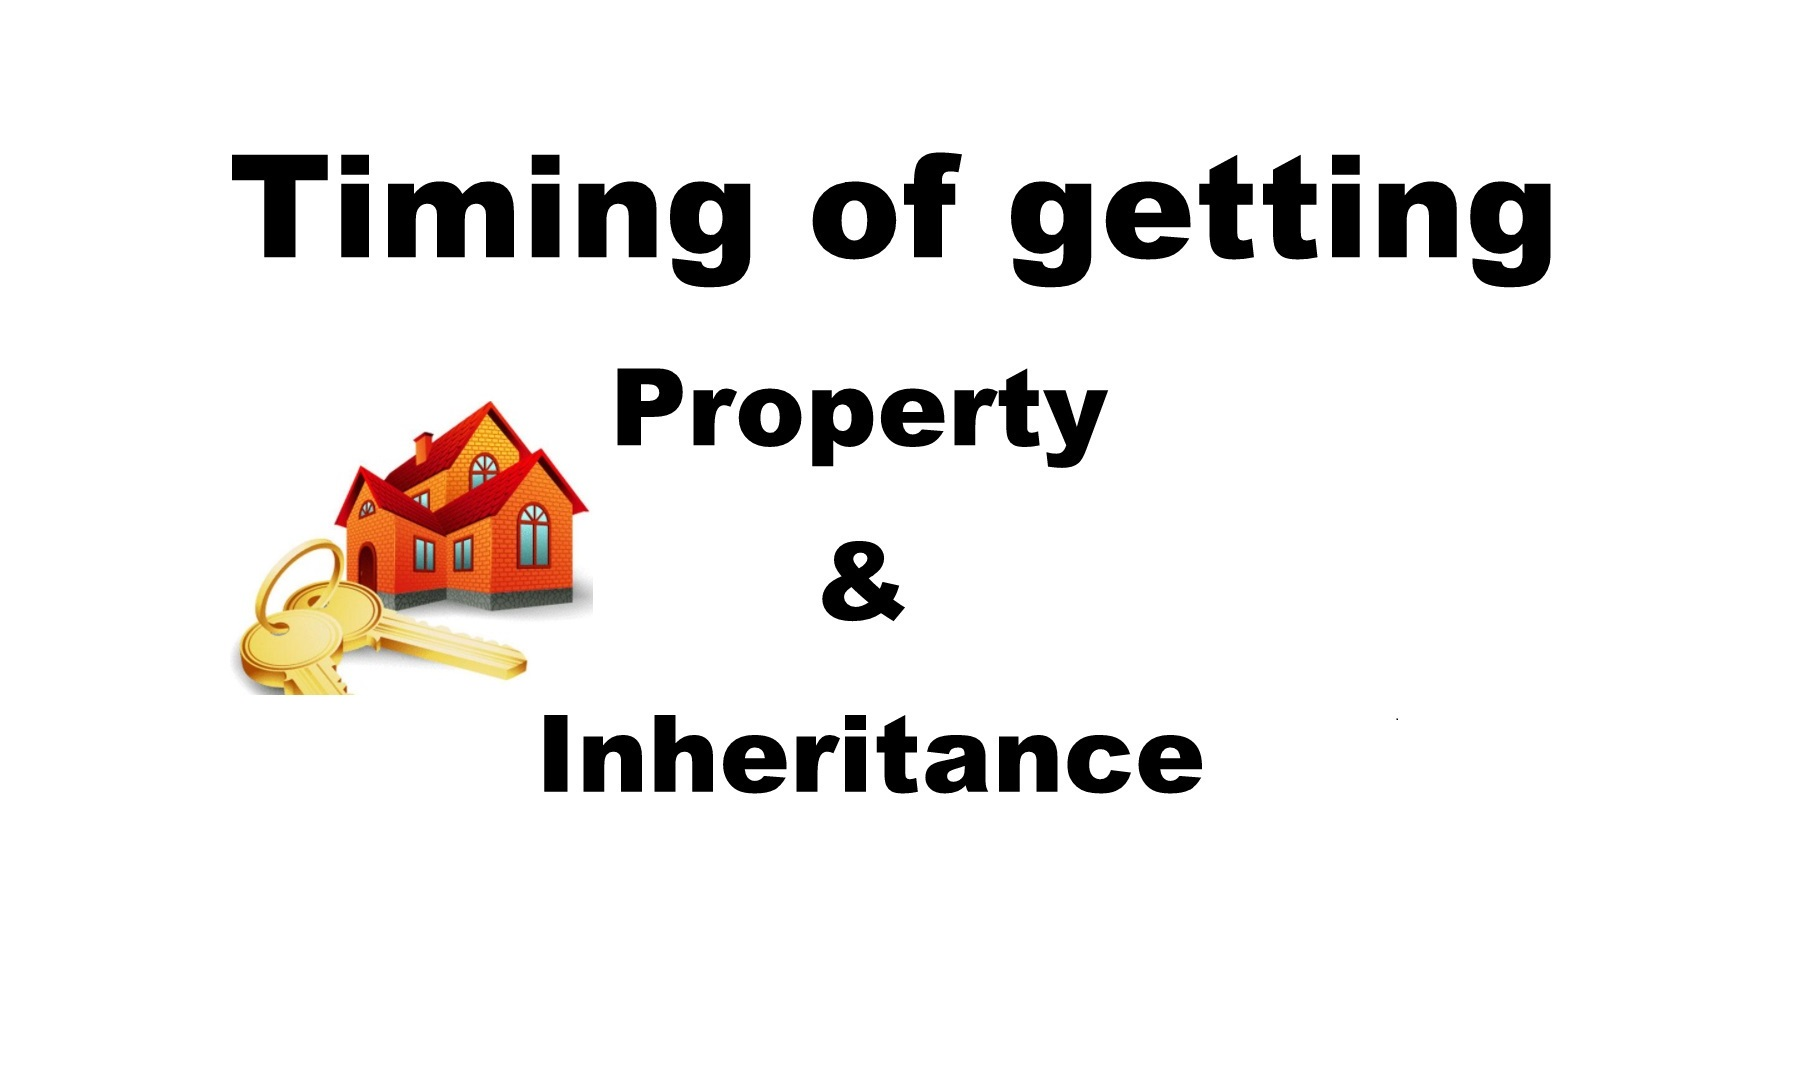 Timing of getting Property & Inheritance